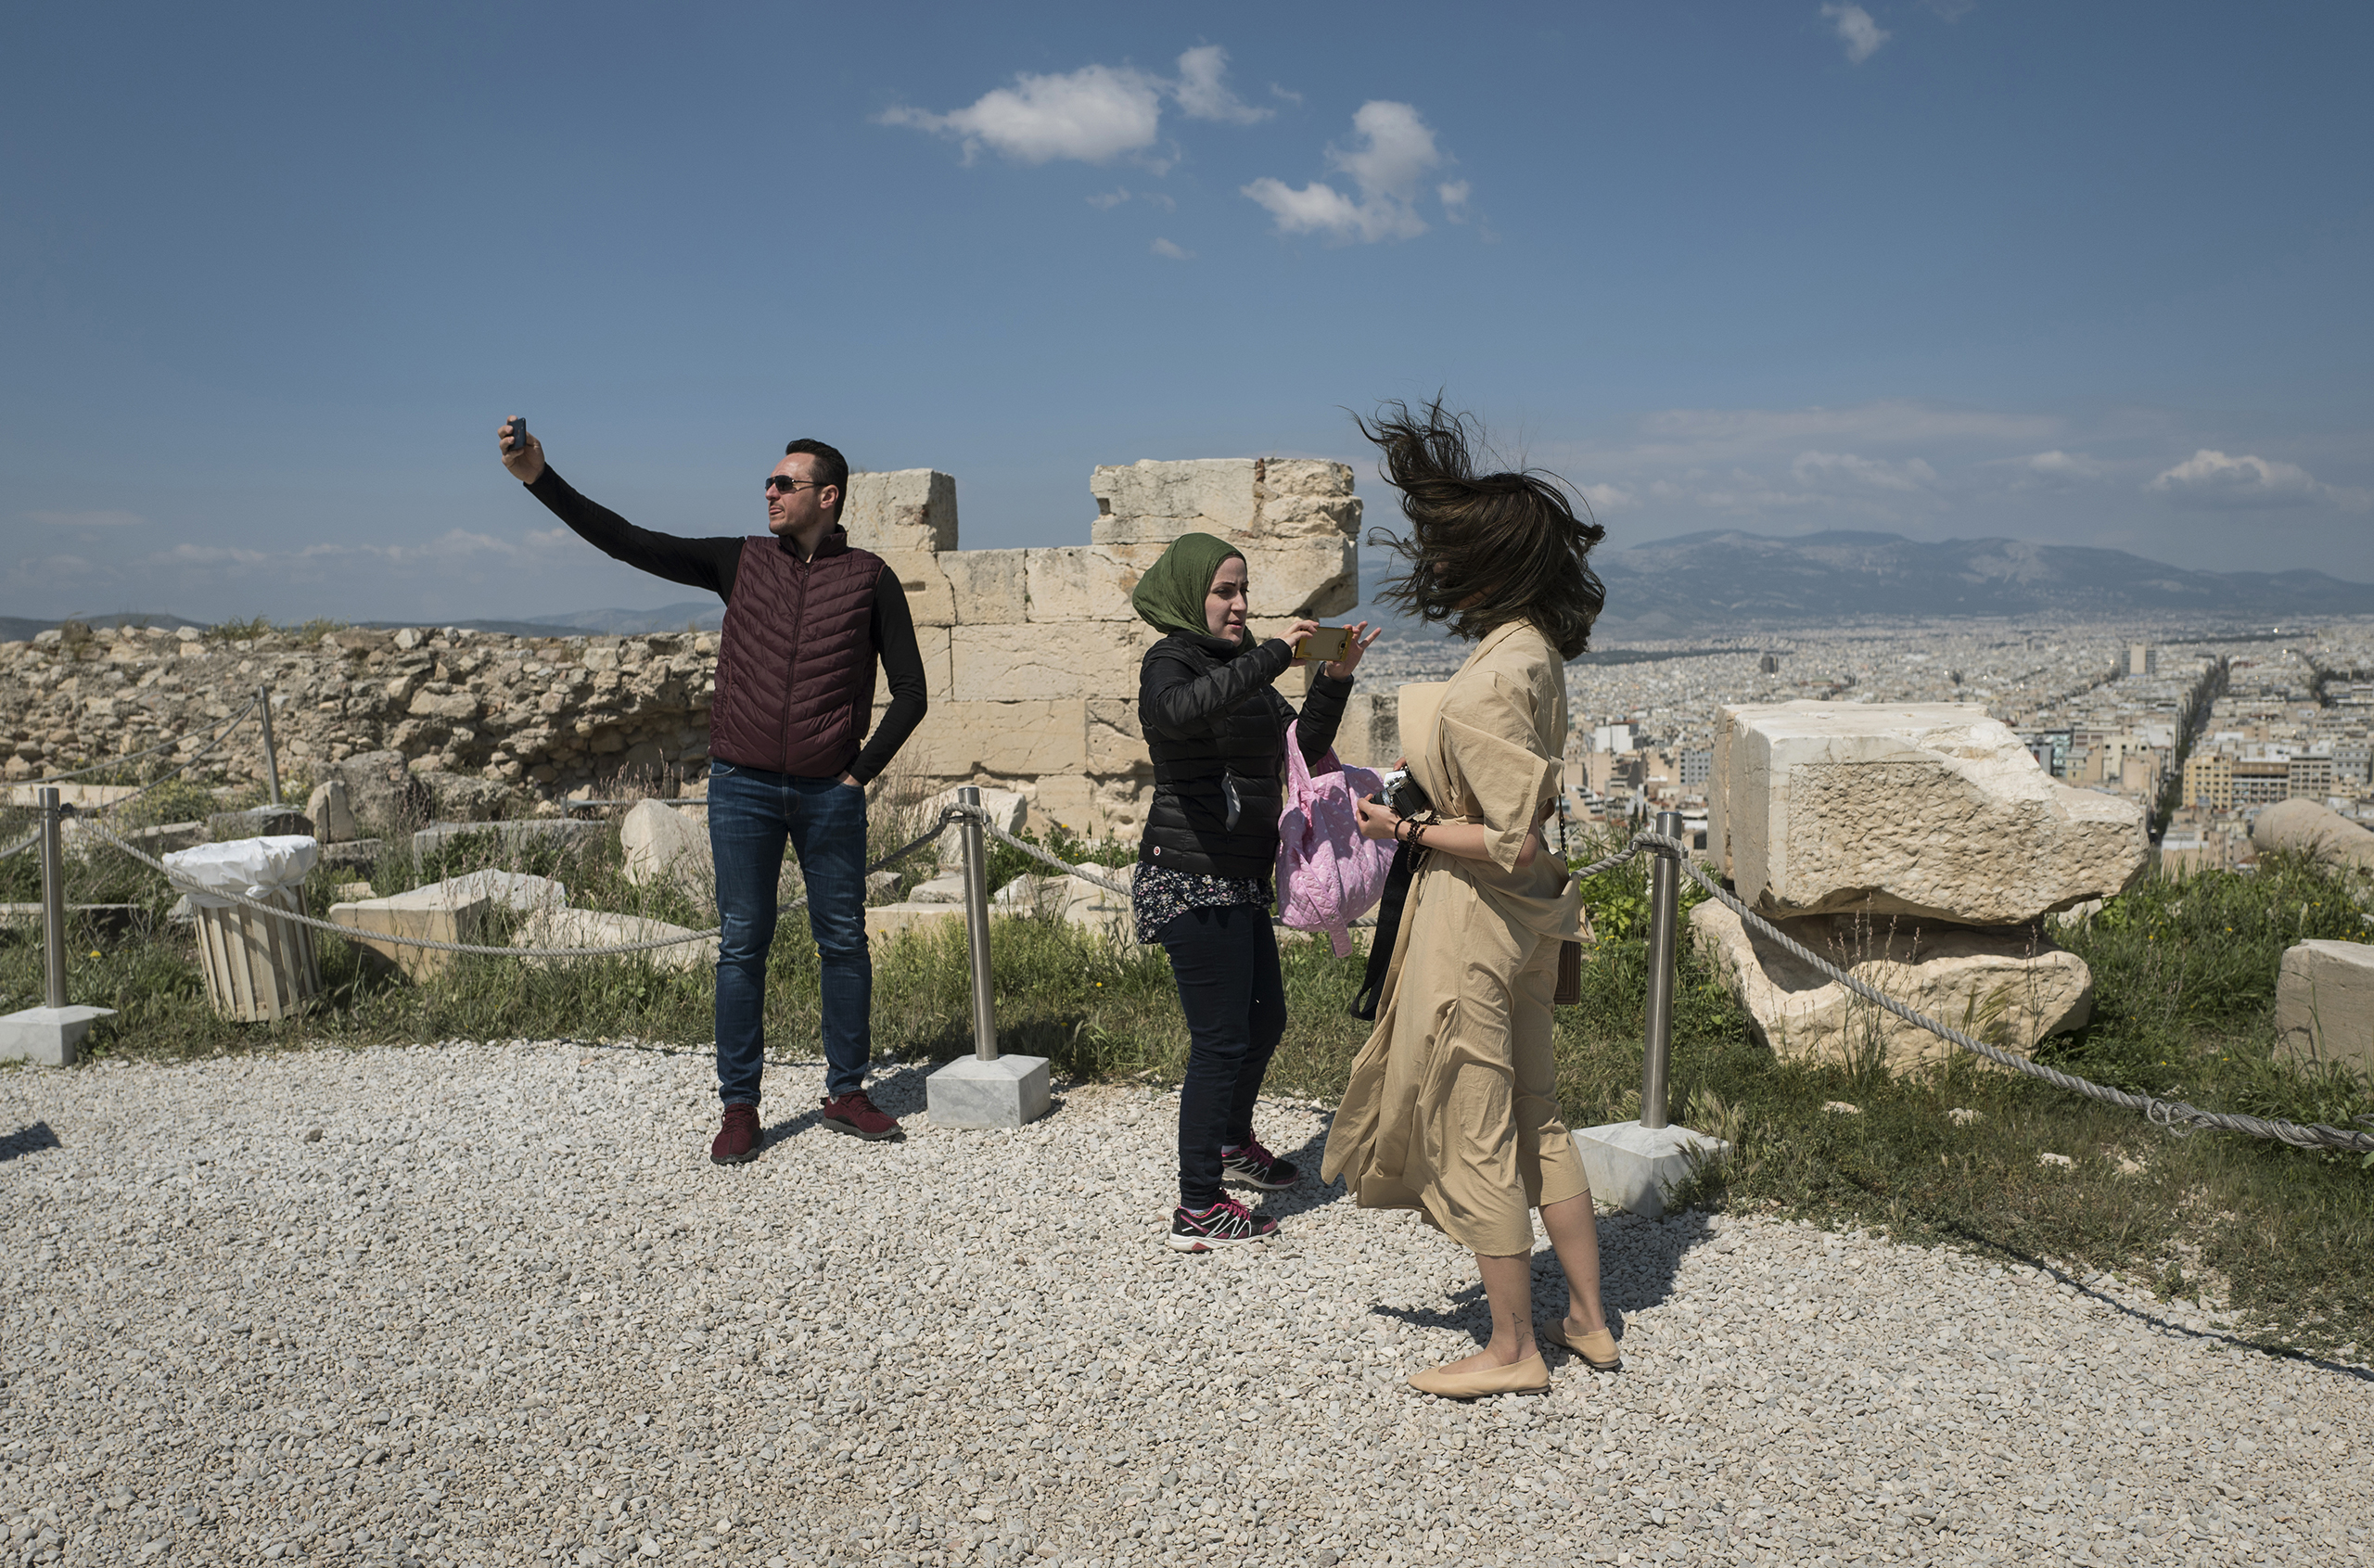 Syrian refugee, Taima, takes photographs among other tourists while visiting the Acropolis in Athens, Greece, March 31, 2017.